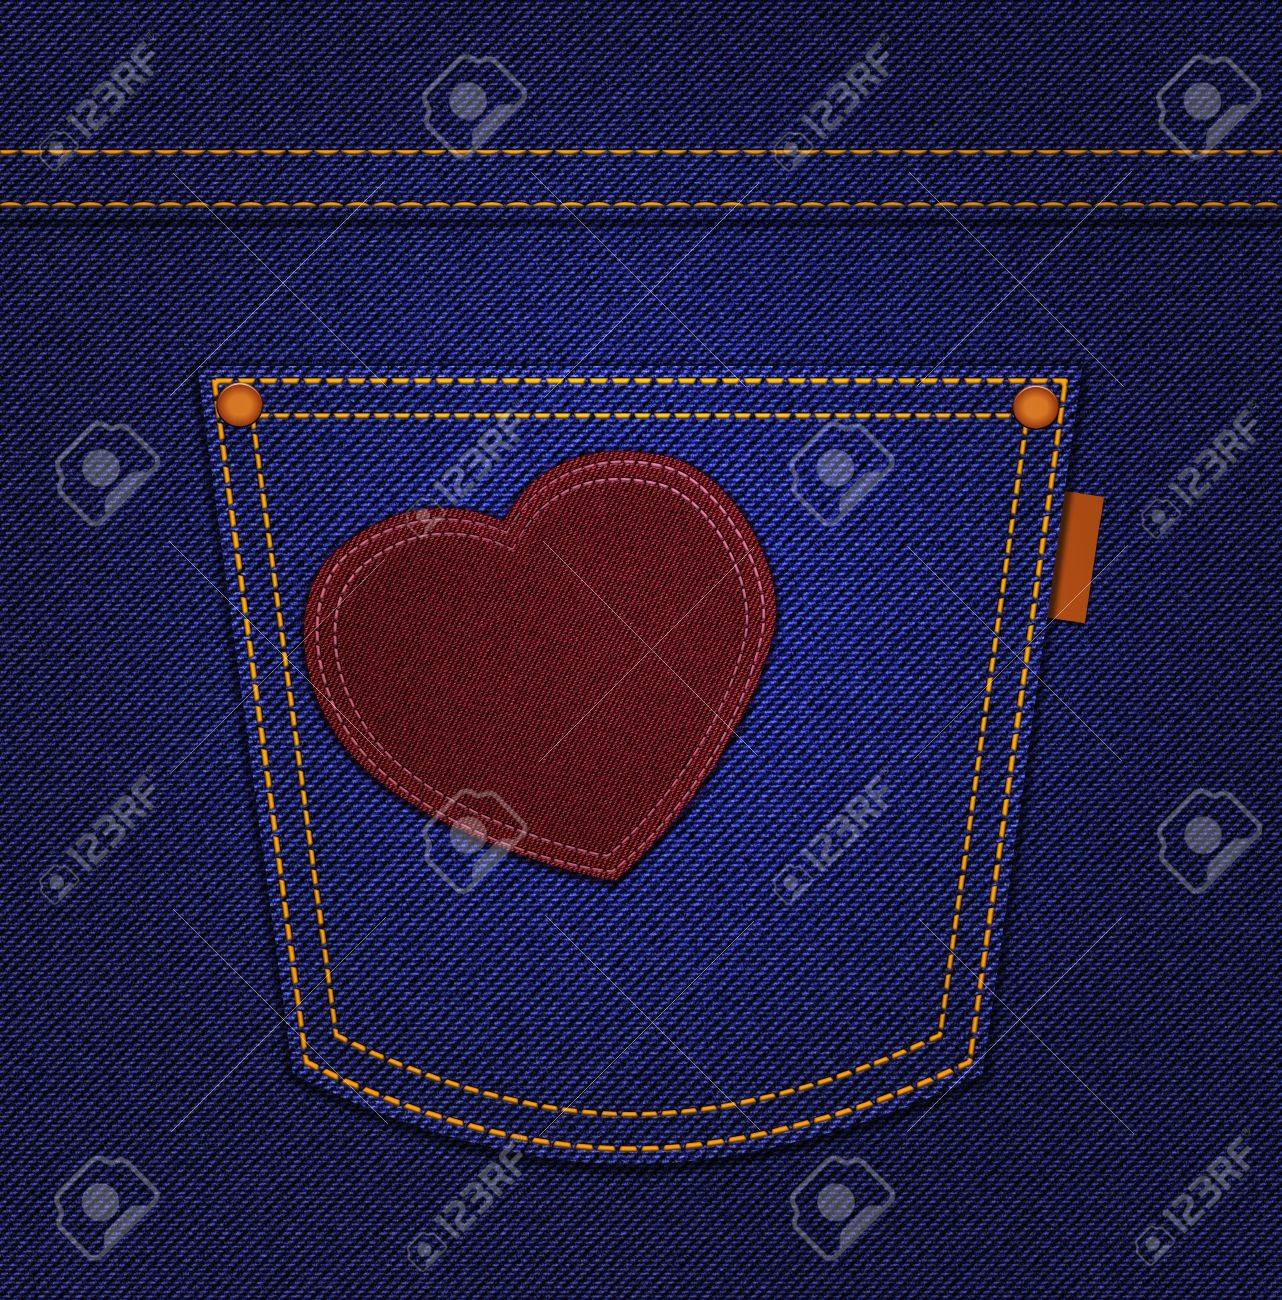 Red heart on jeans pocket on blue denim background Stock Photo - 17355454